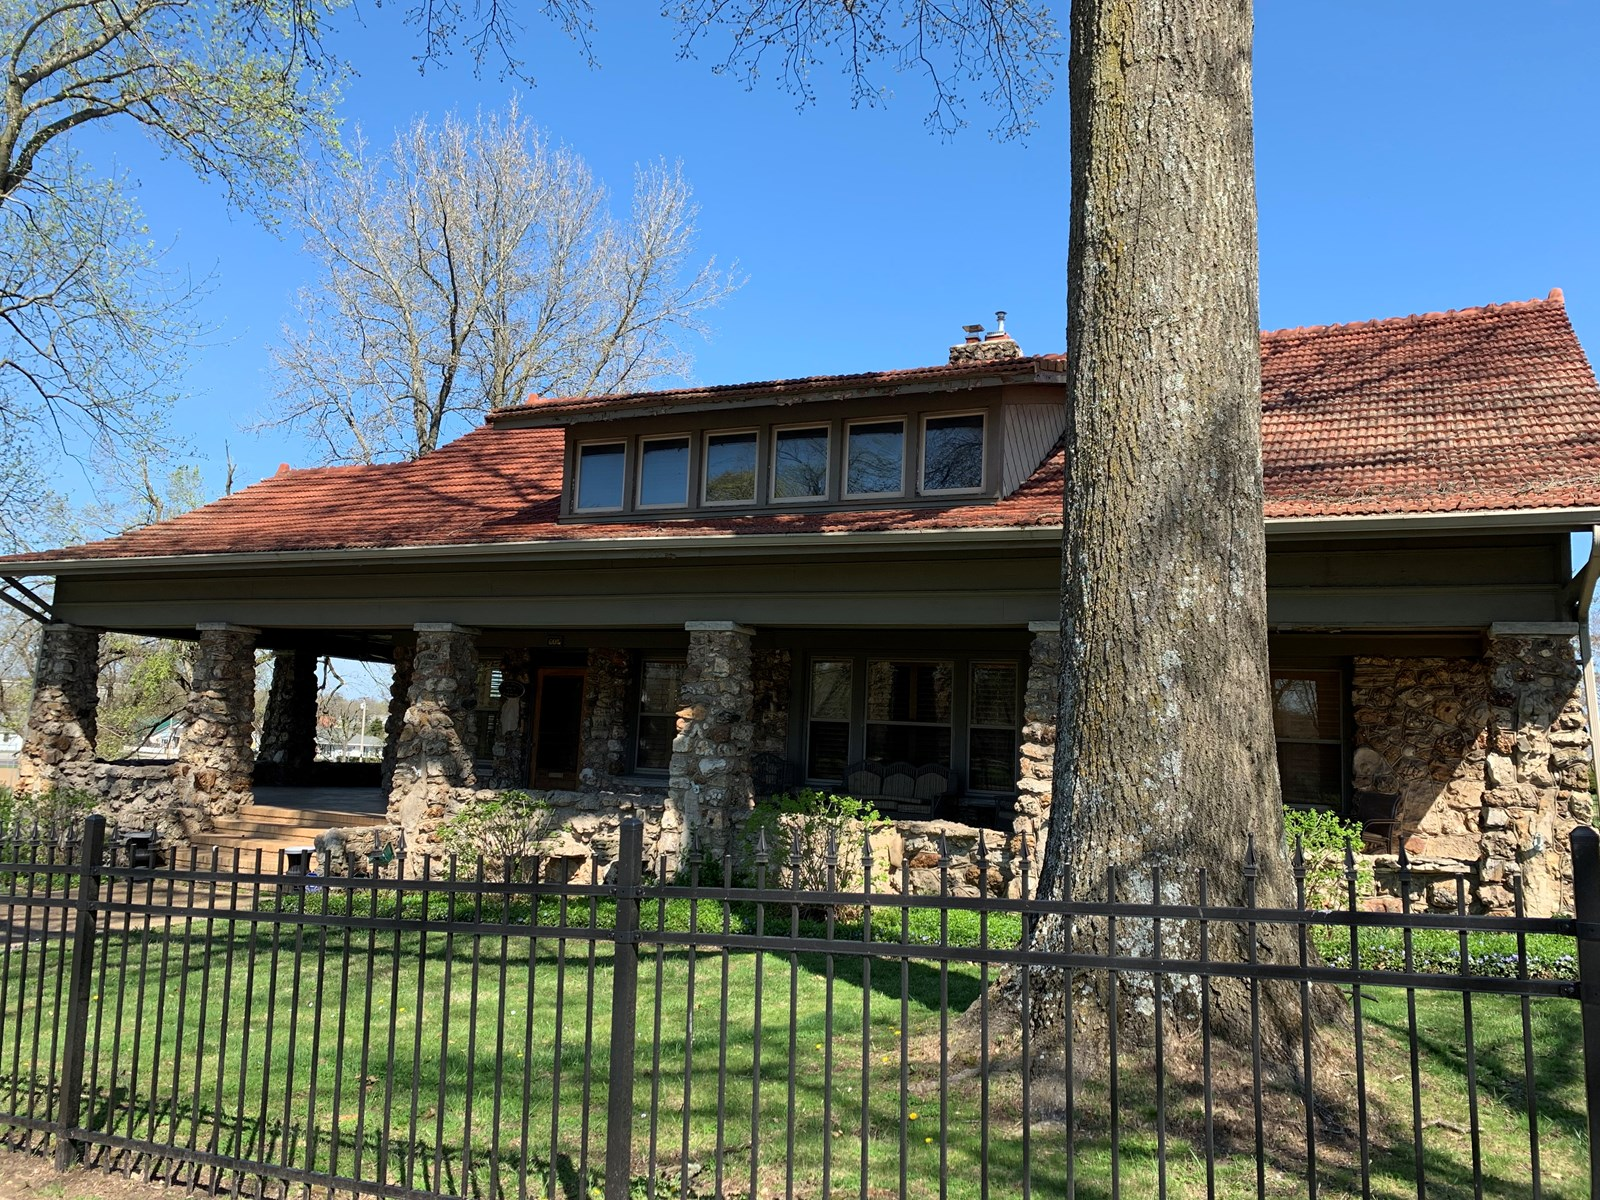 Historic Native Stone Bungalow For Sale in Southern Missouri